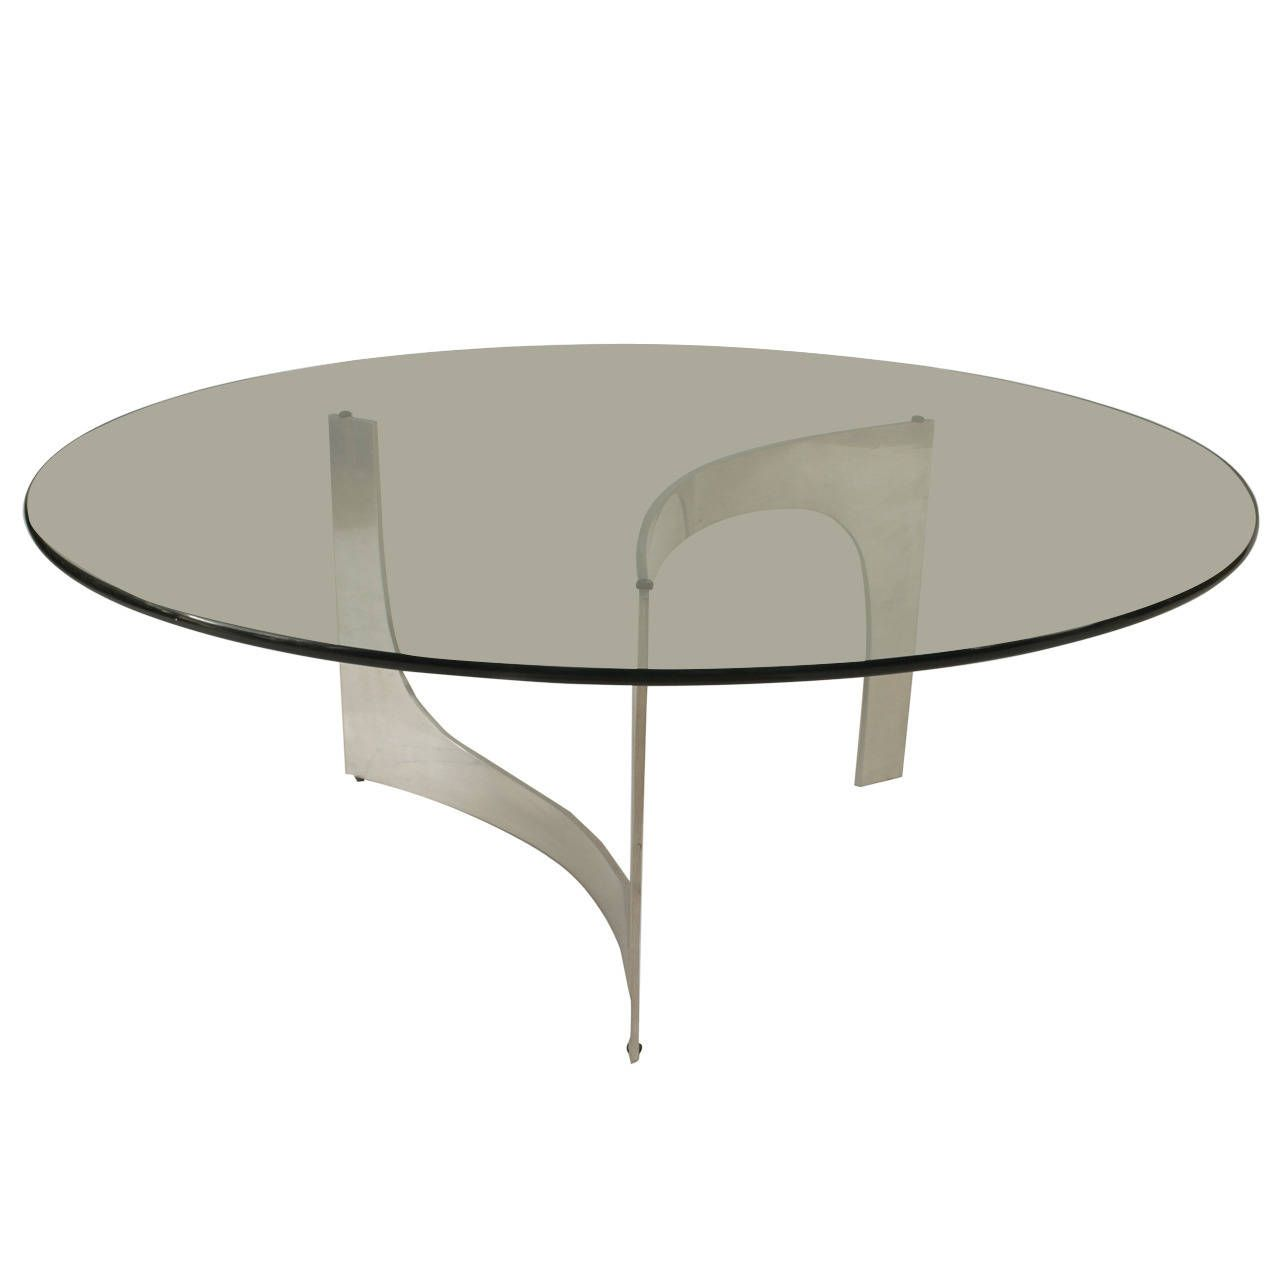 Late 20th C American Aluminum And Glass Round Coffee Table Coffee Table Round Glass Coffee Table Noguchi Table [ 1280 x 1280 Pixel ]